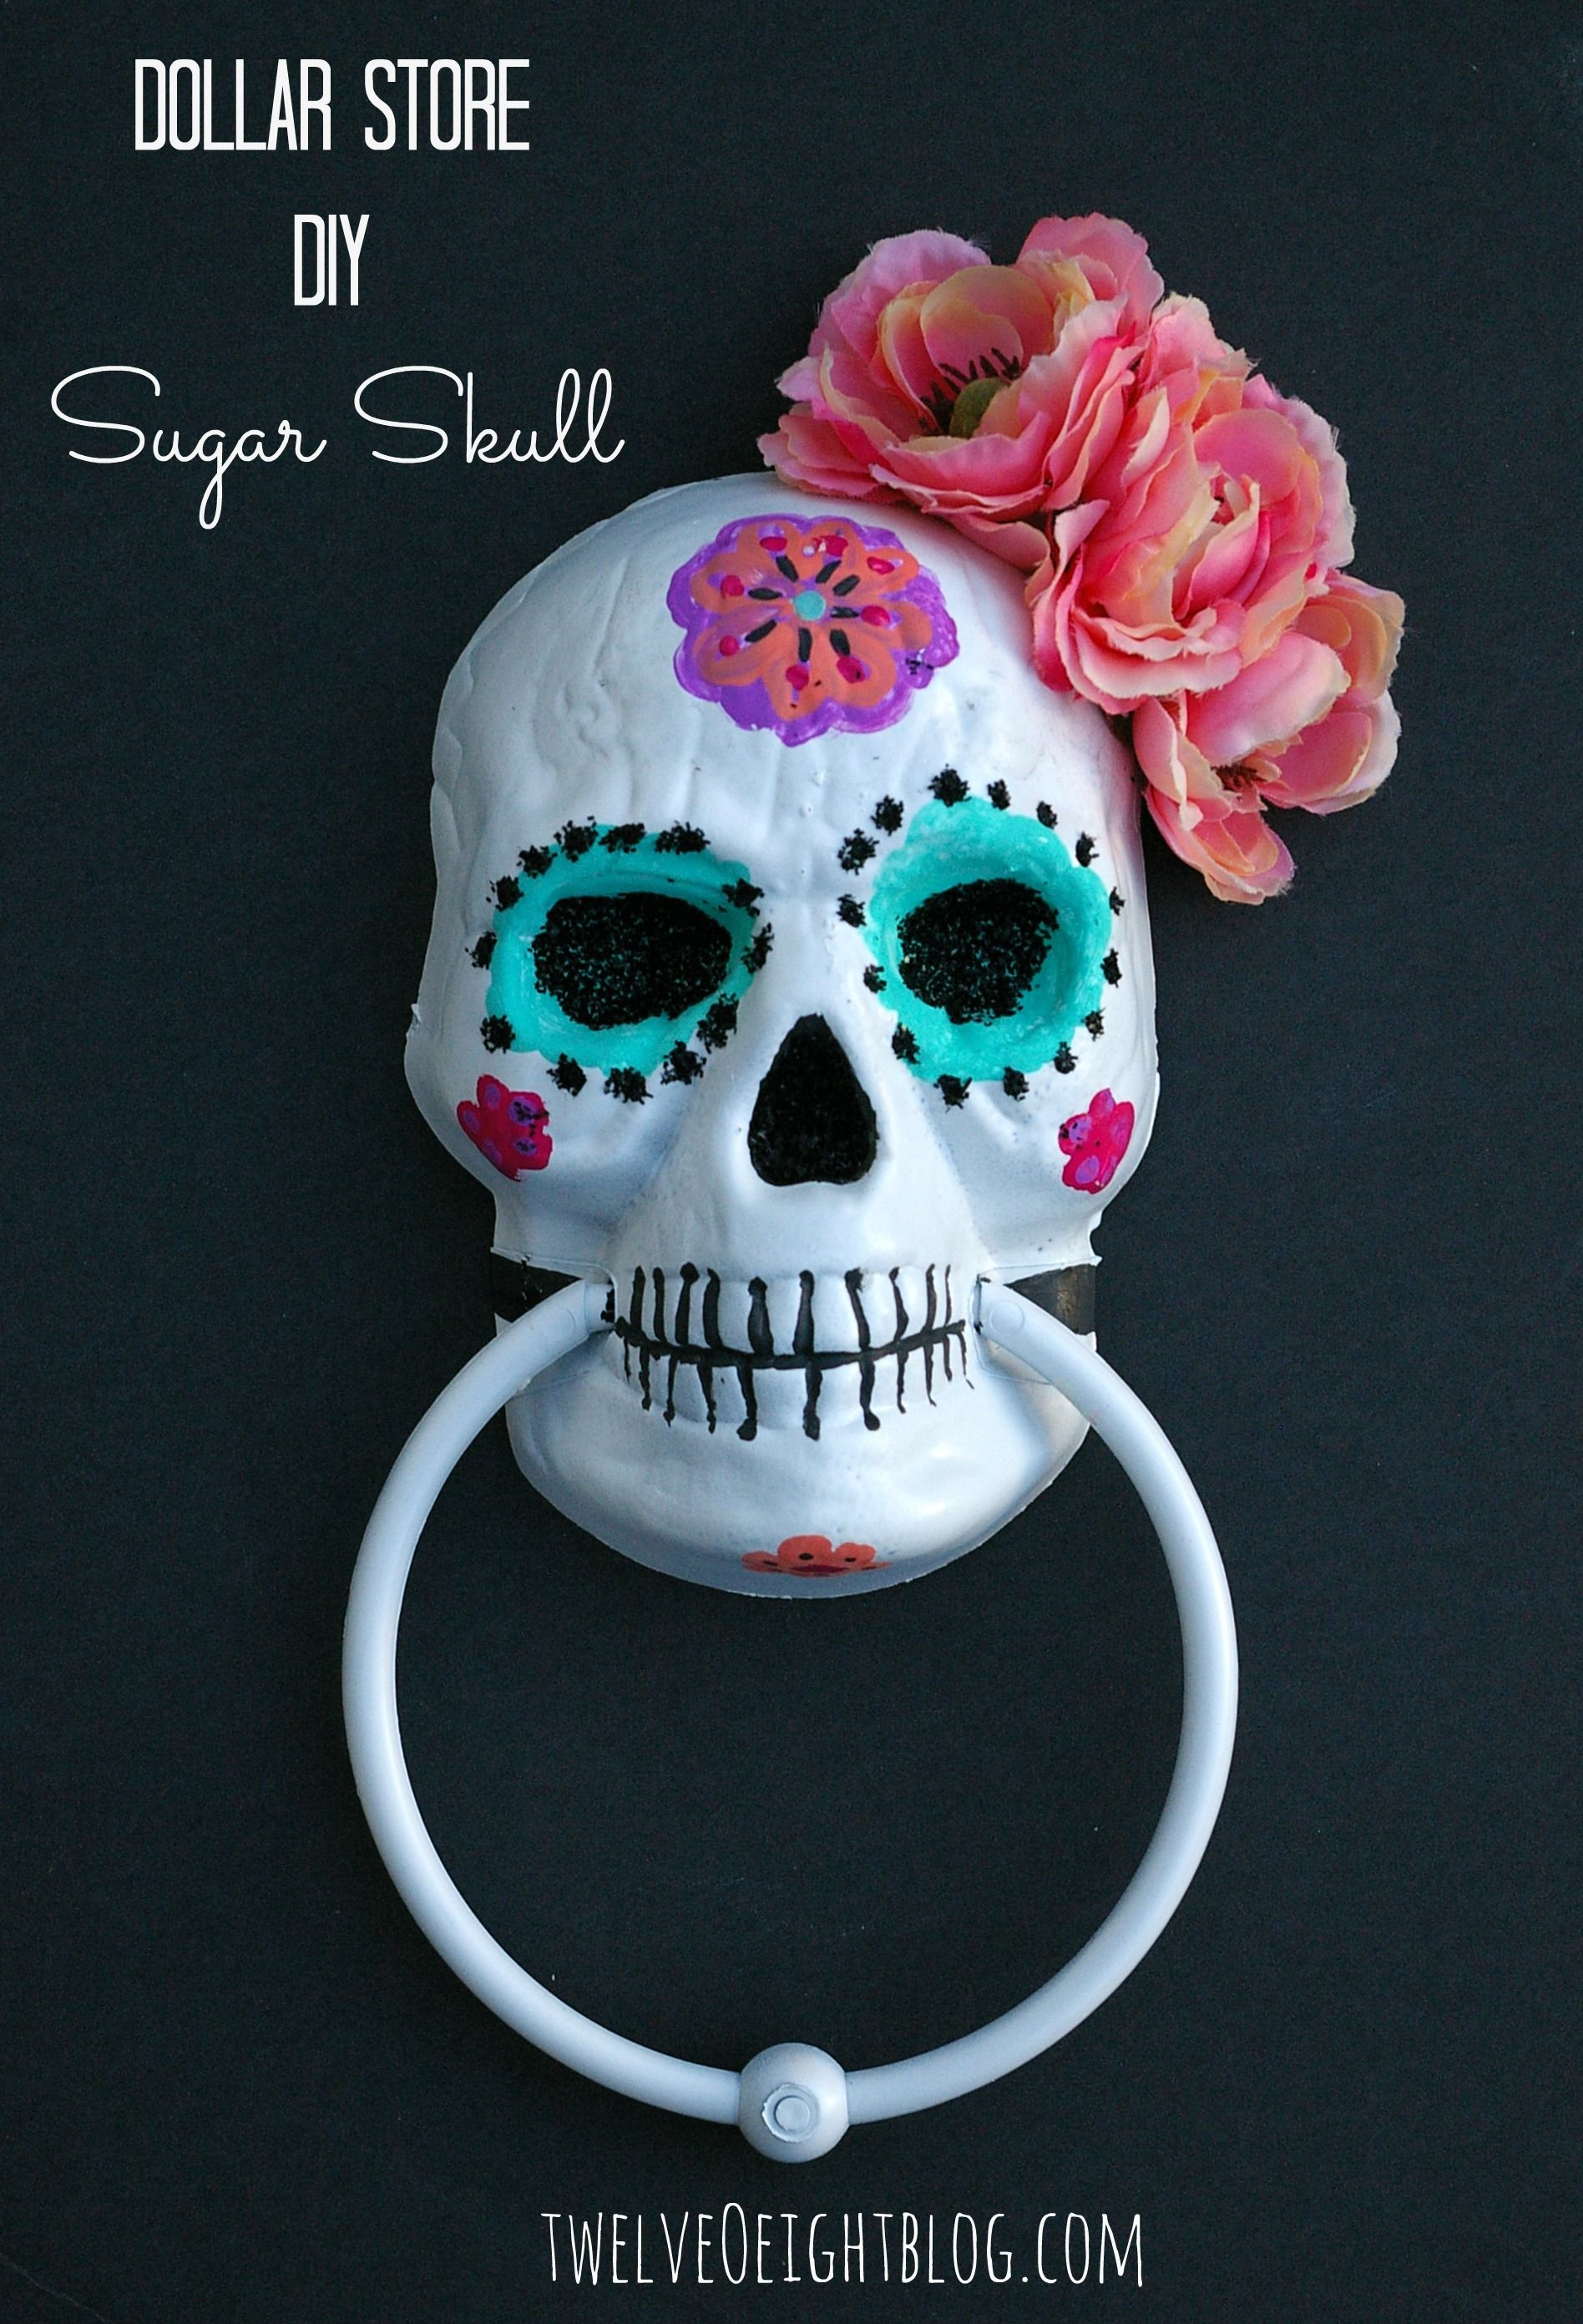 DIY Dollar Store Painted Sugar Skull I bought one of